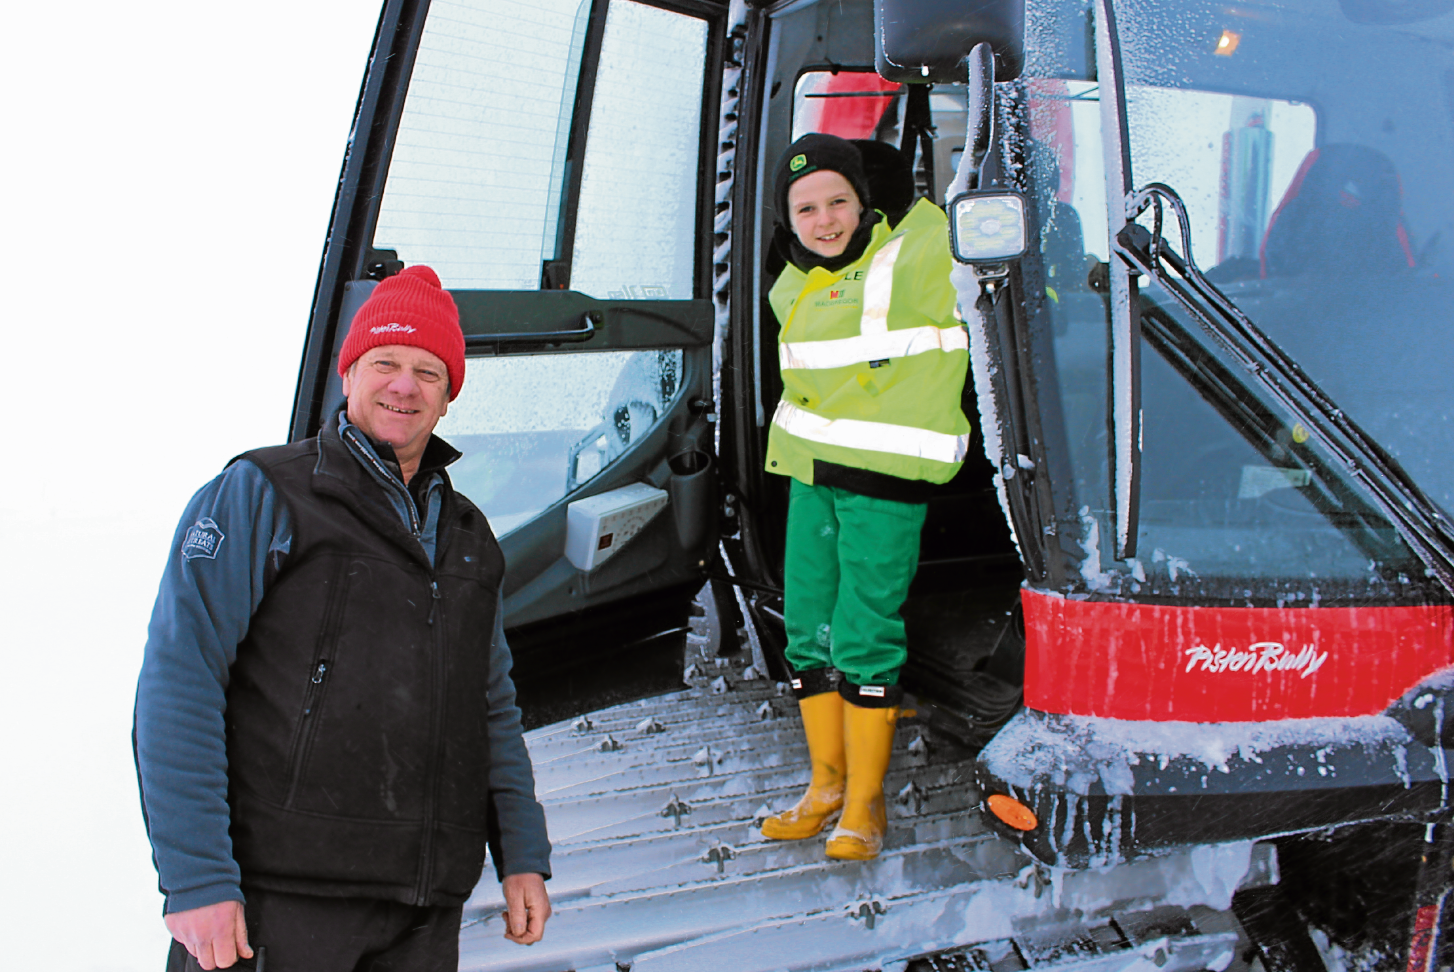 Special treat for Highlands snow hero Kyle.